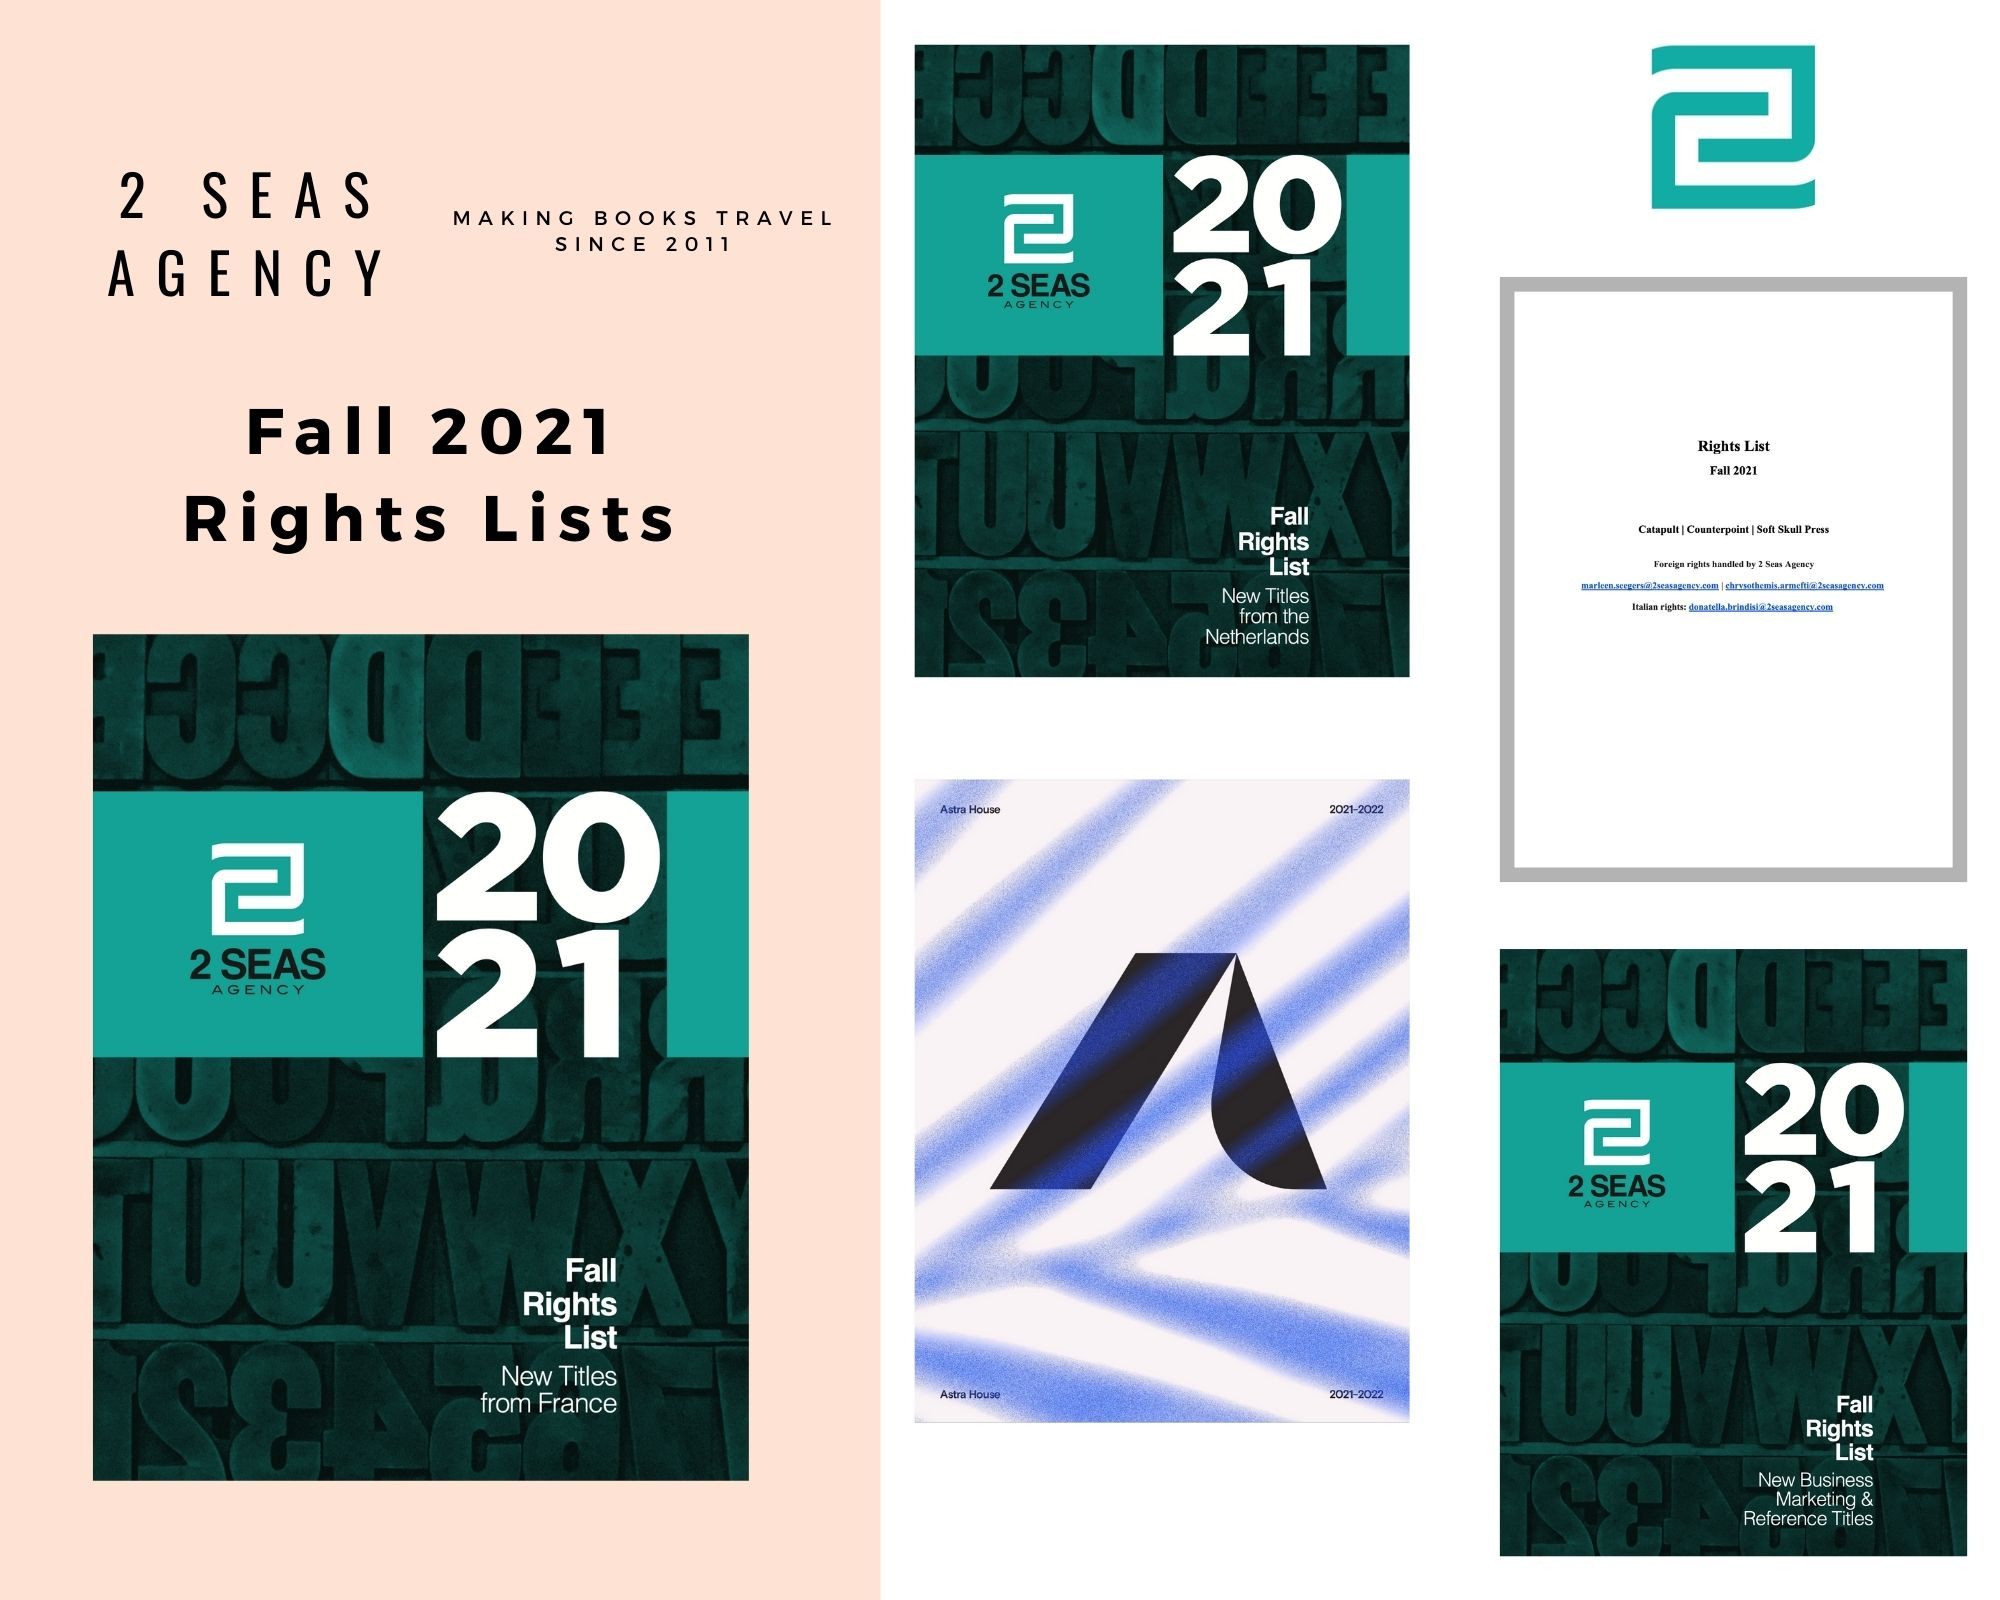 fall 2021 rights lists